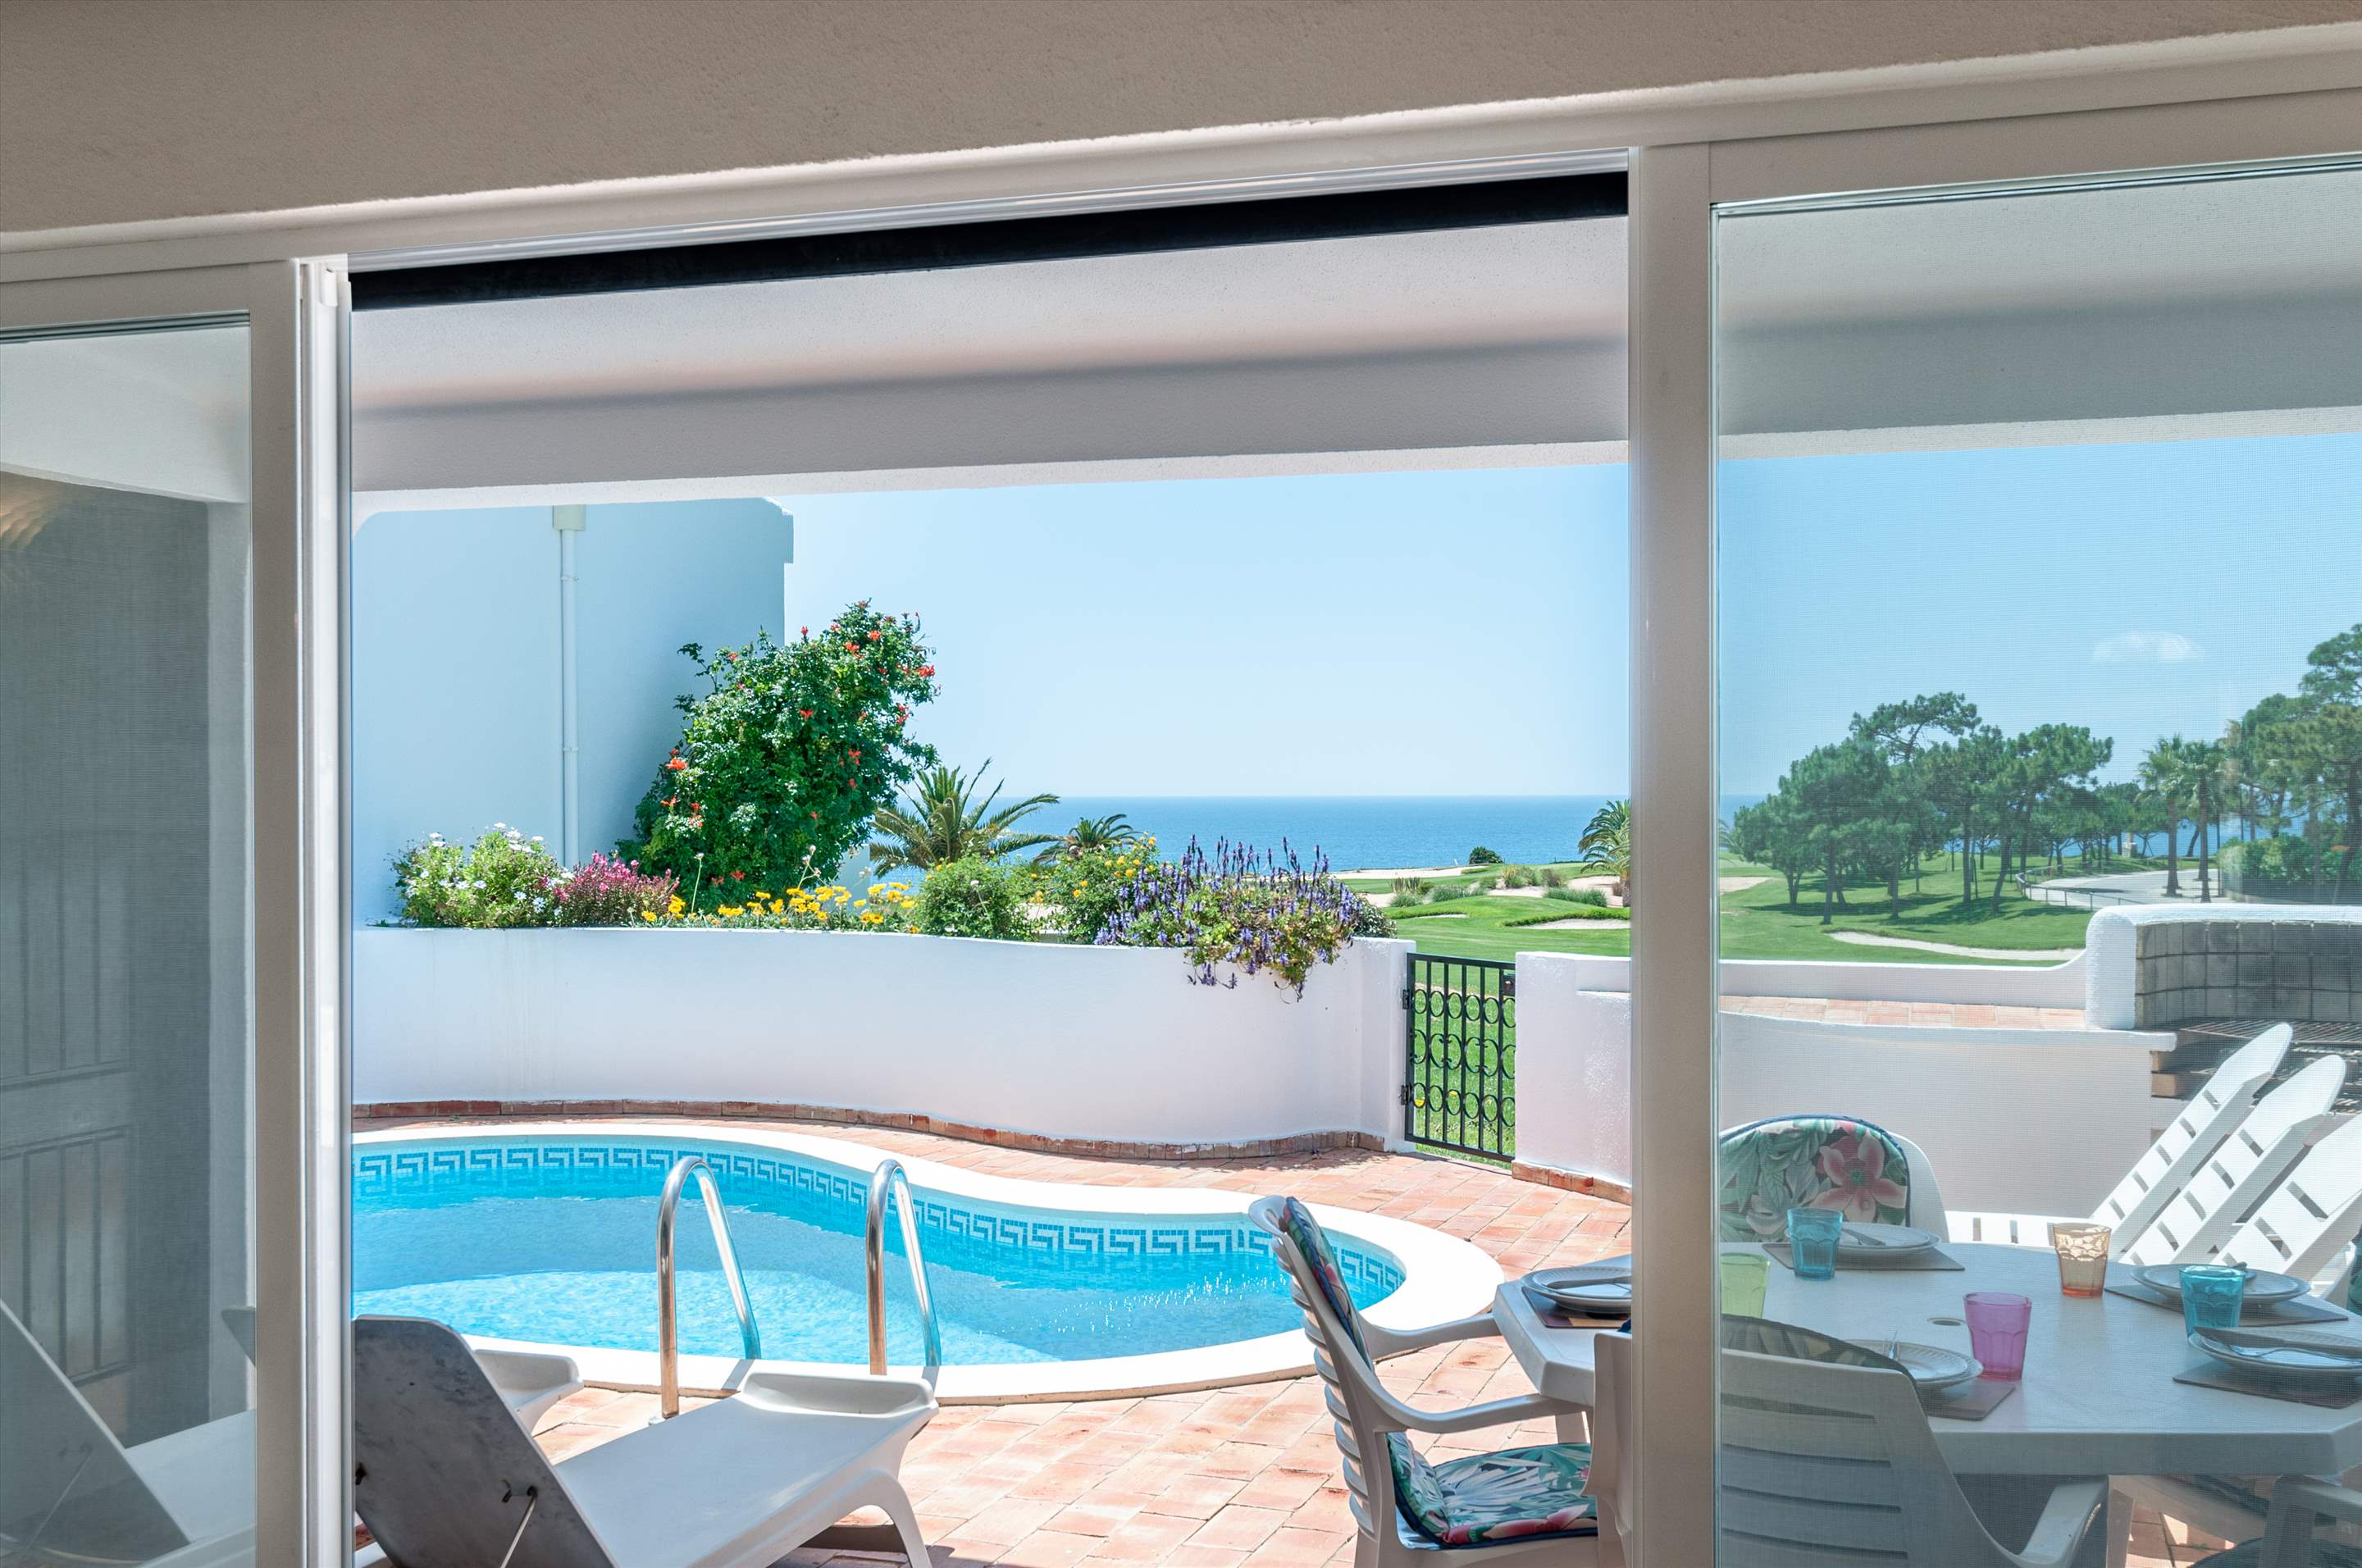 Villa Mimosa 6, 3 bedroom villa in Vale do Lobo, Algarve Photo #7